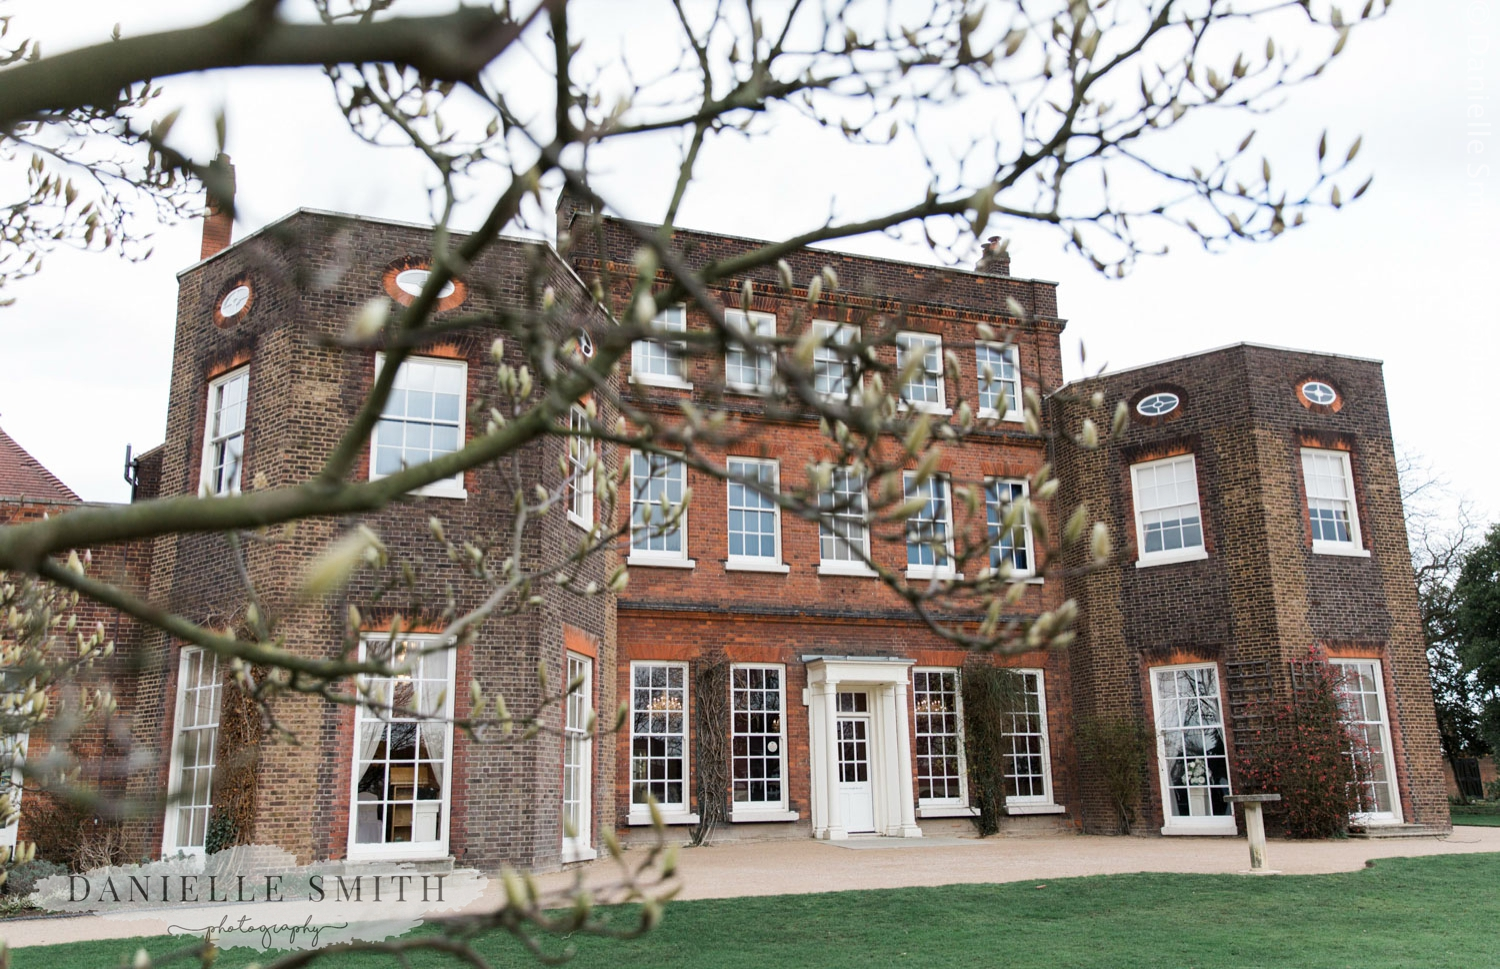 langtons house registry office in spring